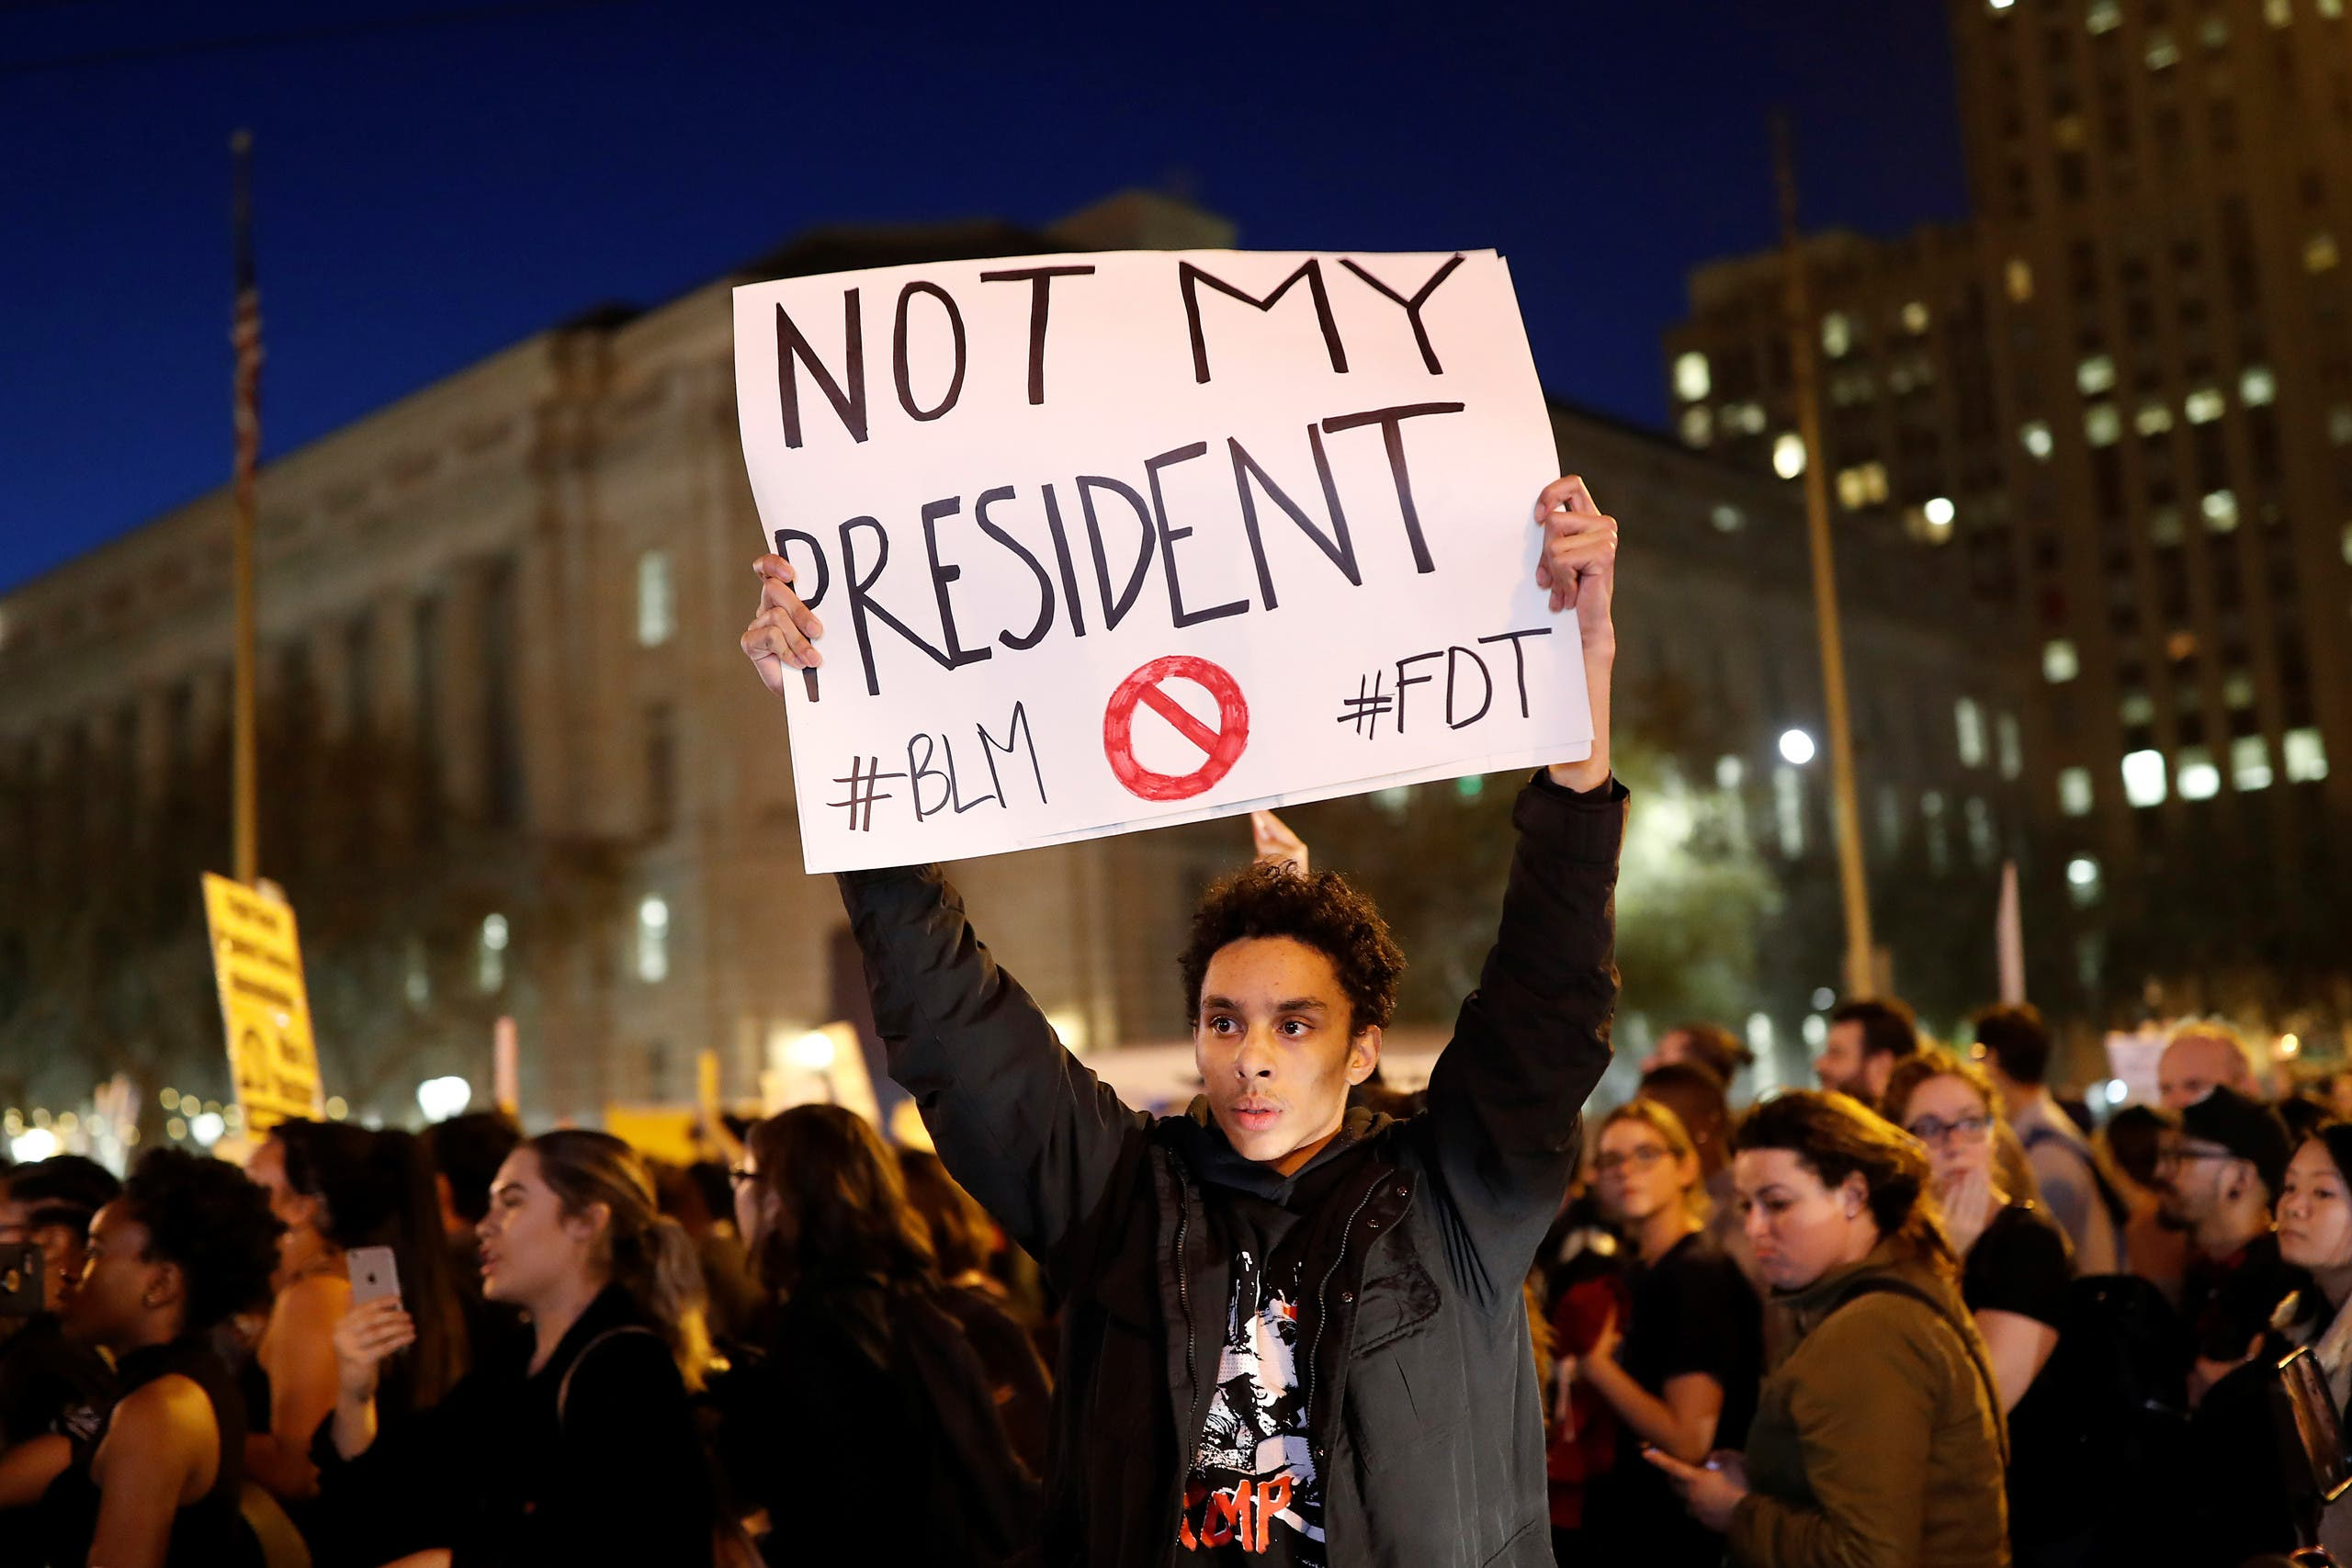 A demonstrator holds a sign during a protest in San Francisco, California, US following the election of Donald Trump as the president of the United States November 9, 2016. (Reuters)